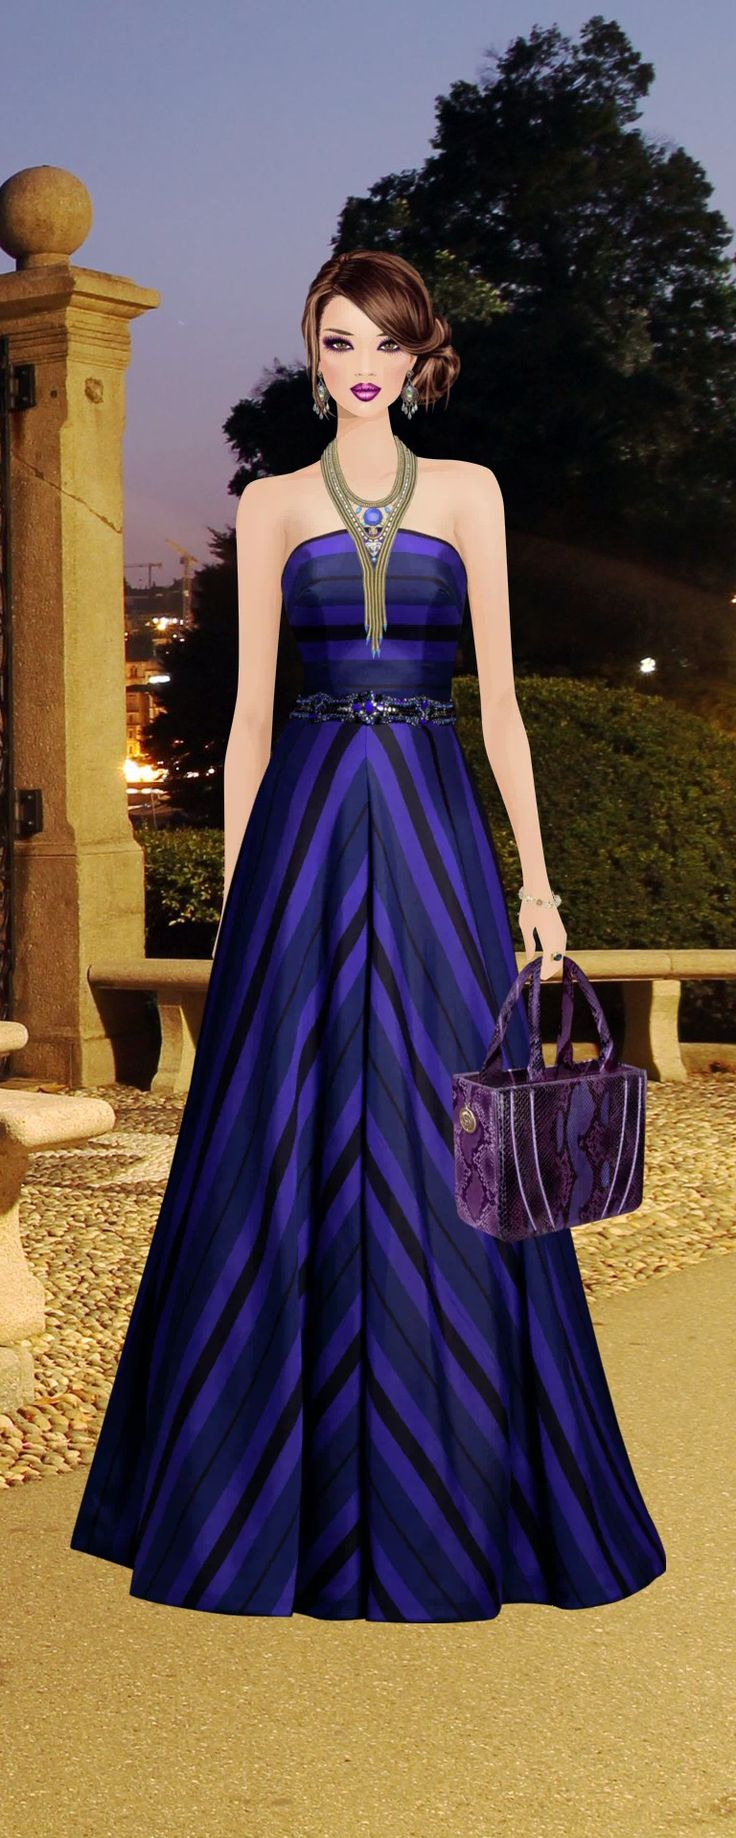 covetfashion  covetfashion diamond on       cocgems